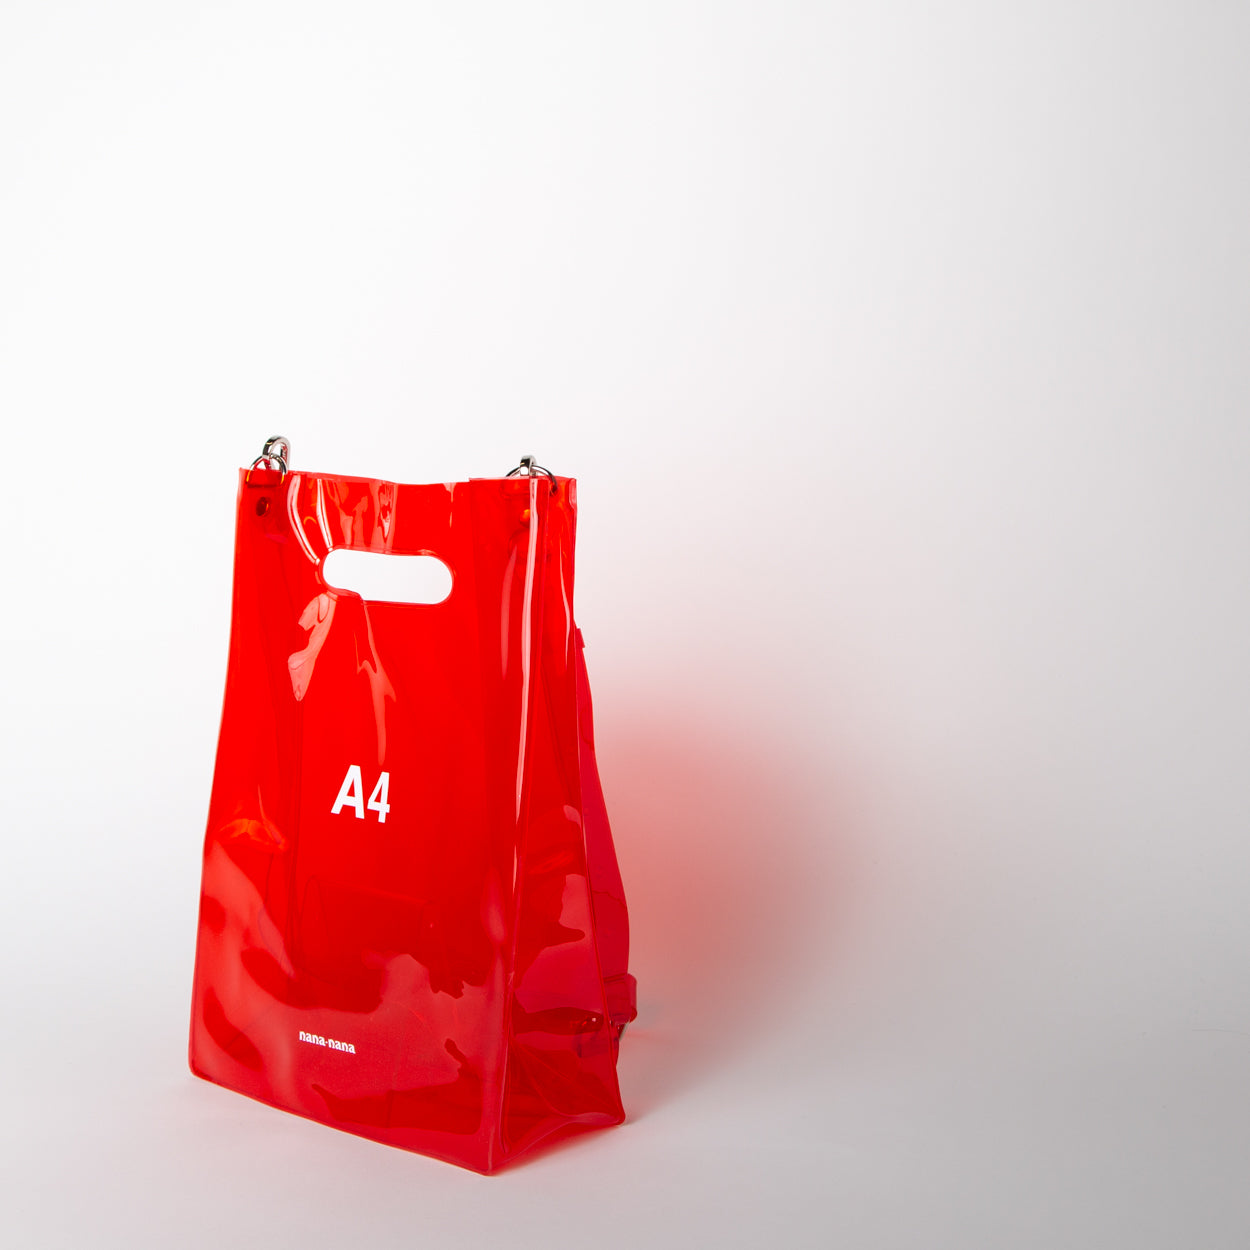 A4 Bag, red